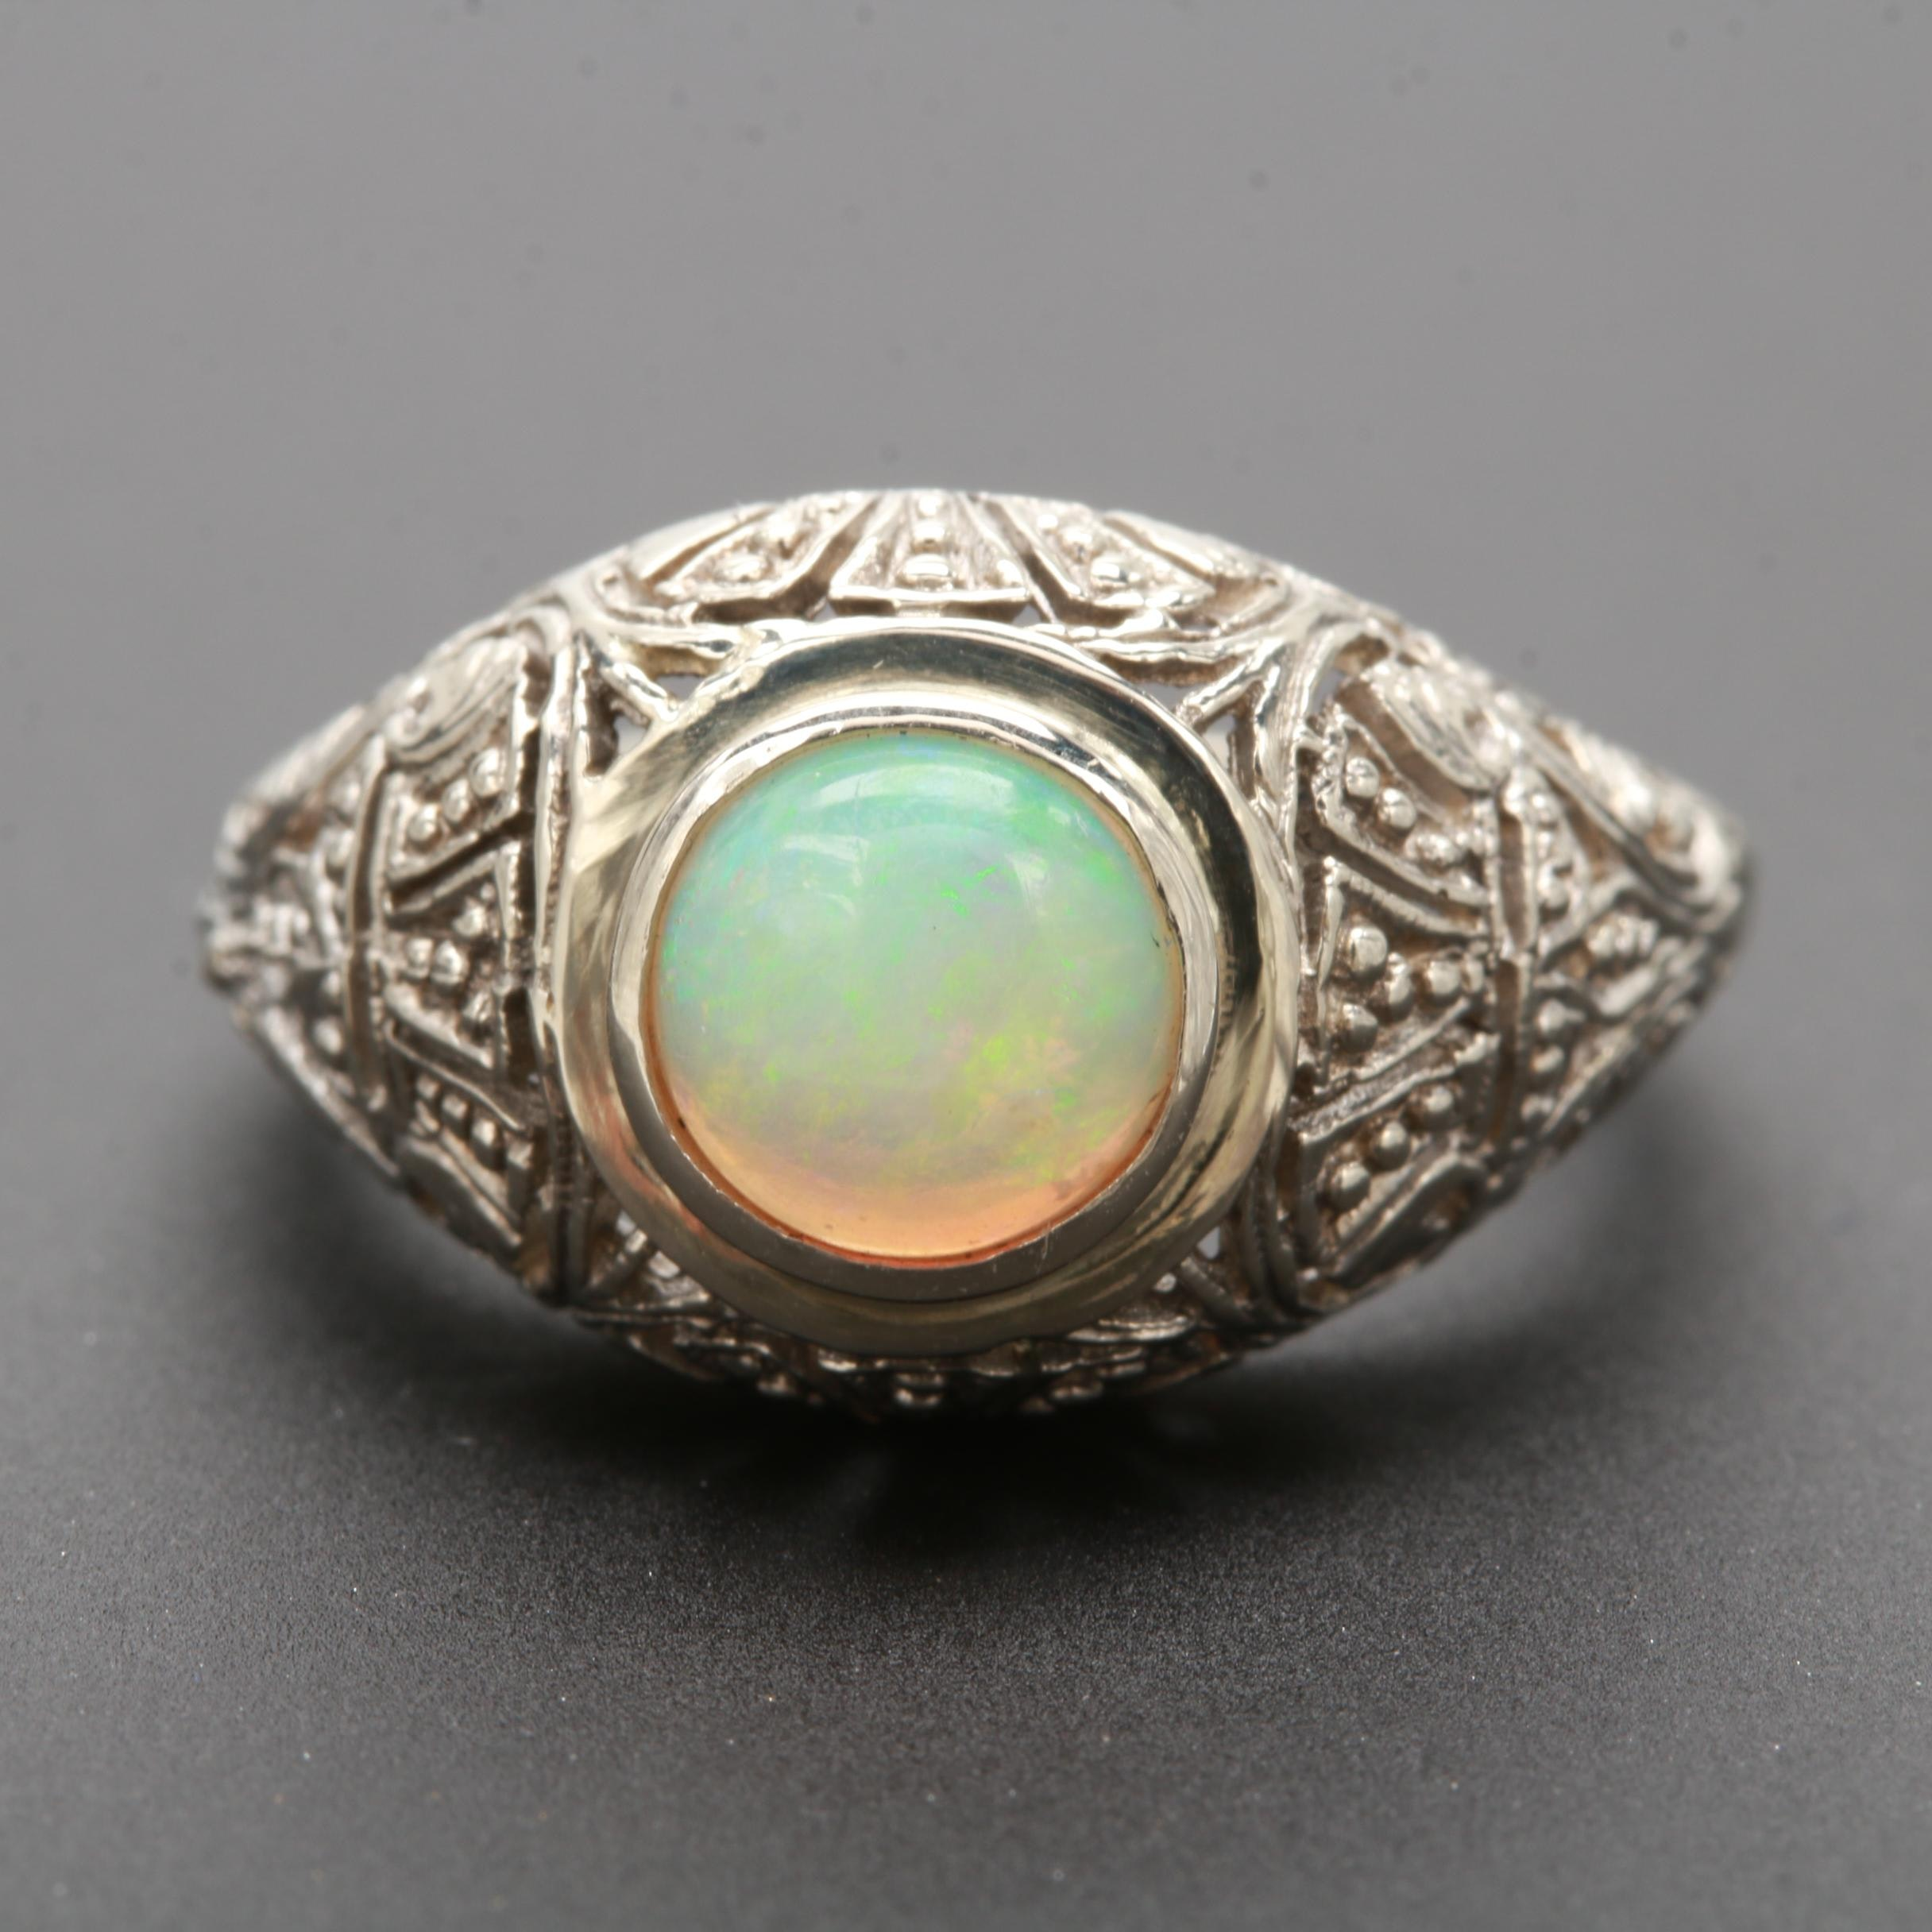 Vintage Style 14K White Gold Opal Ring